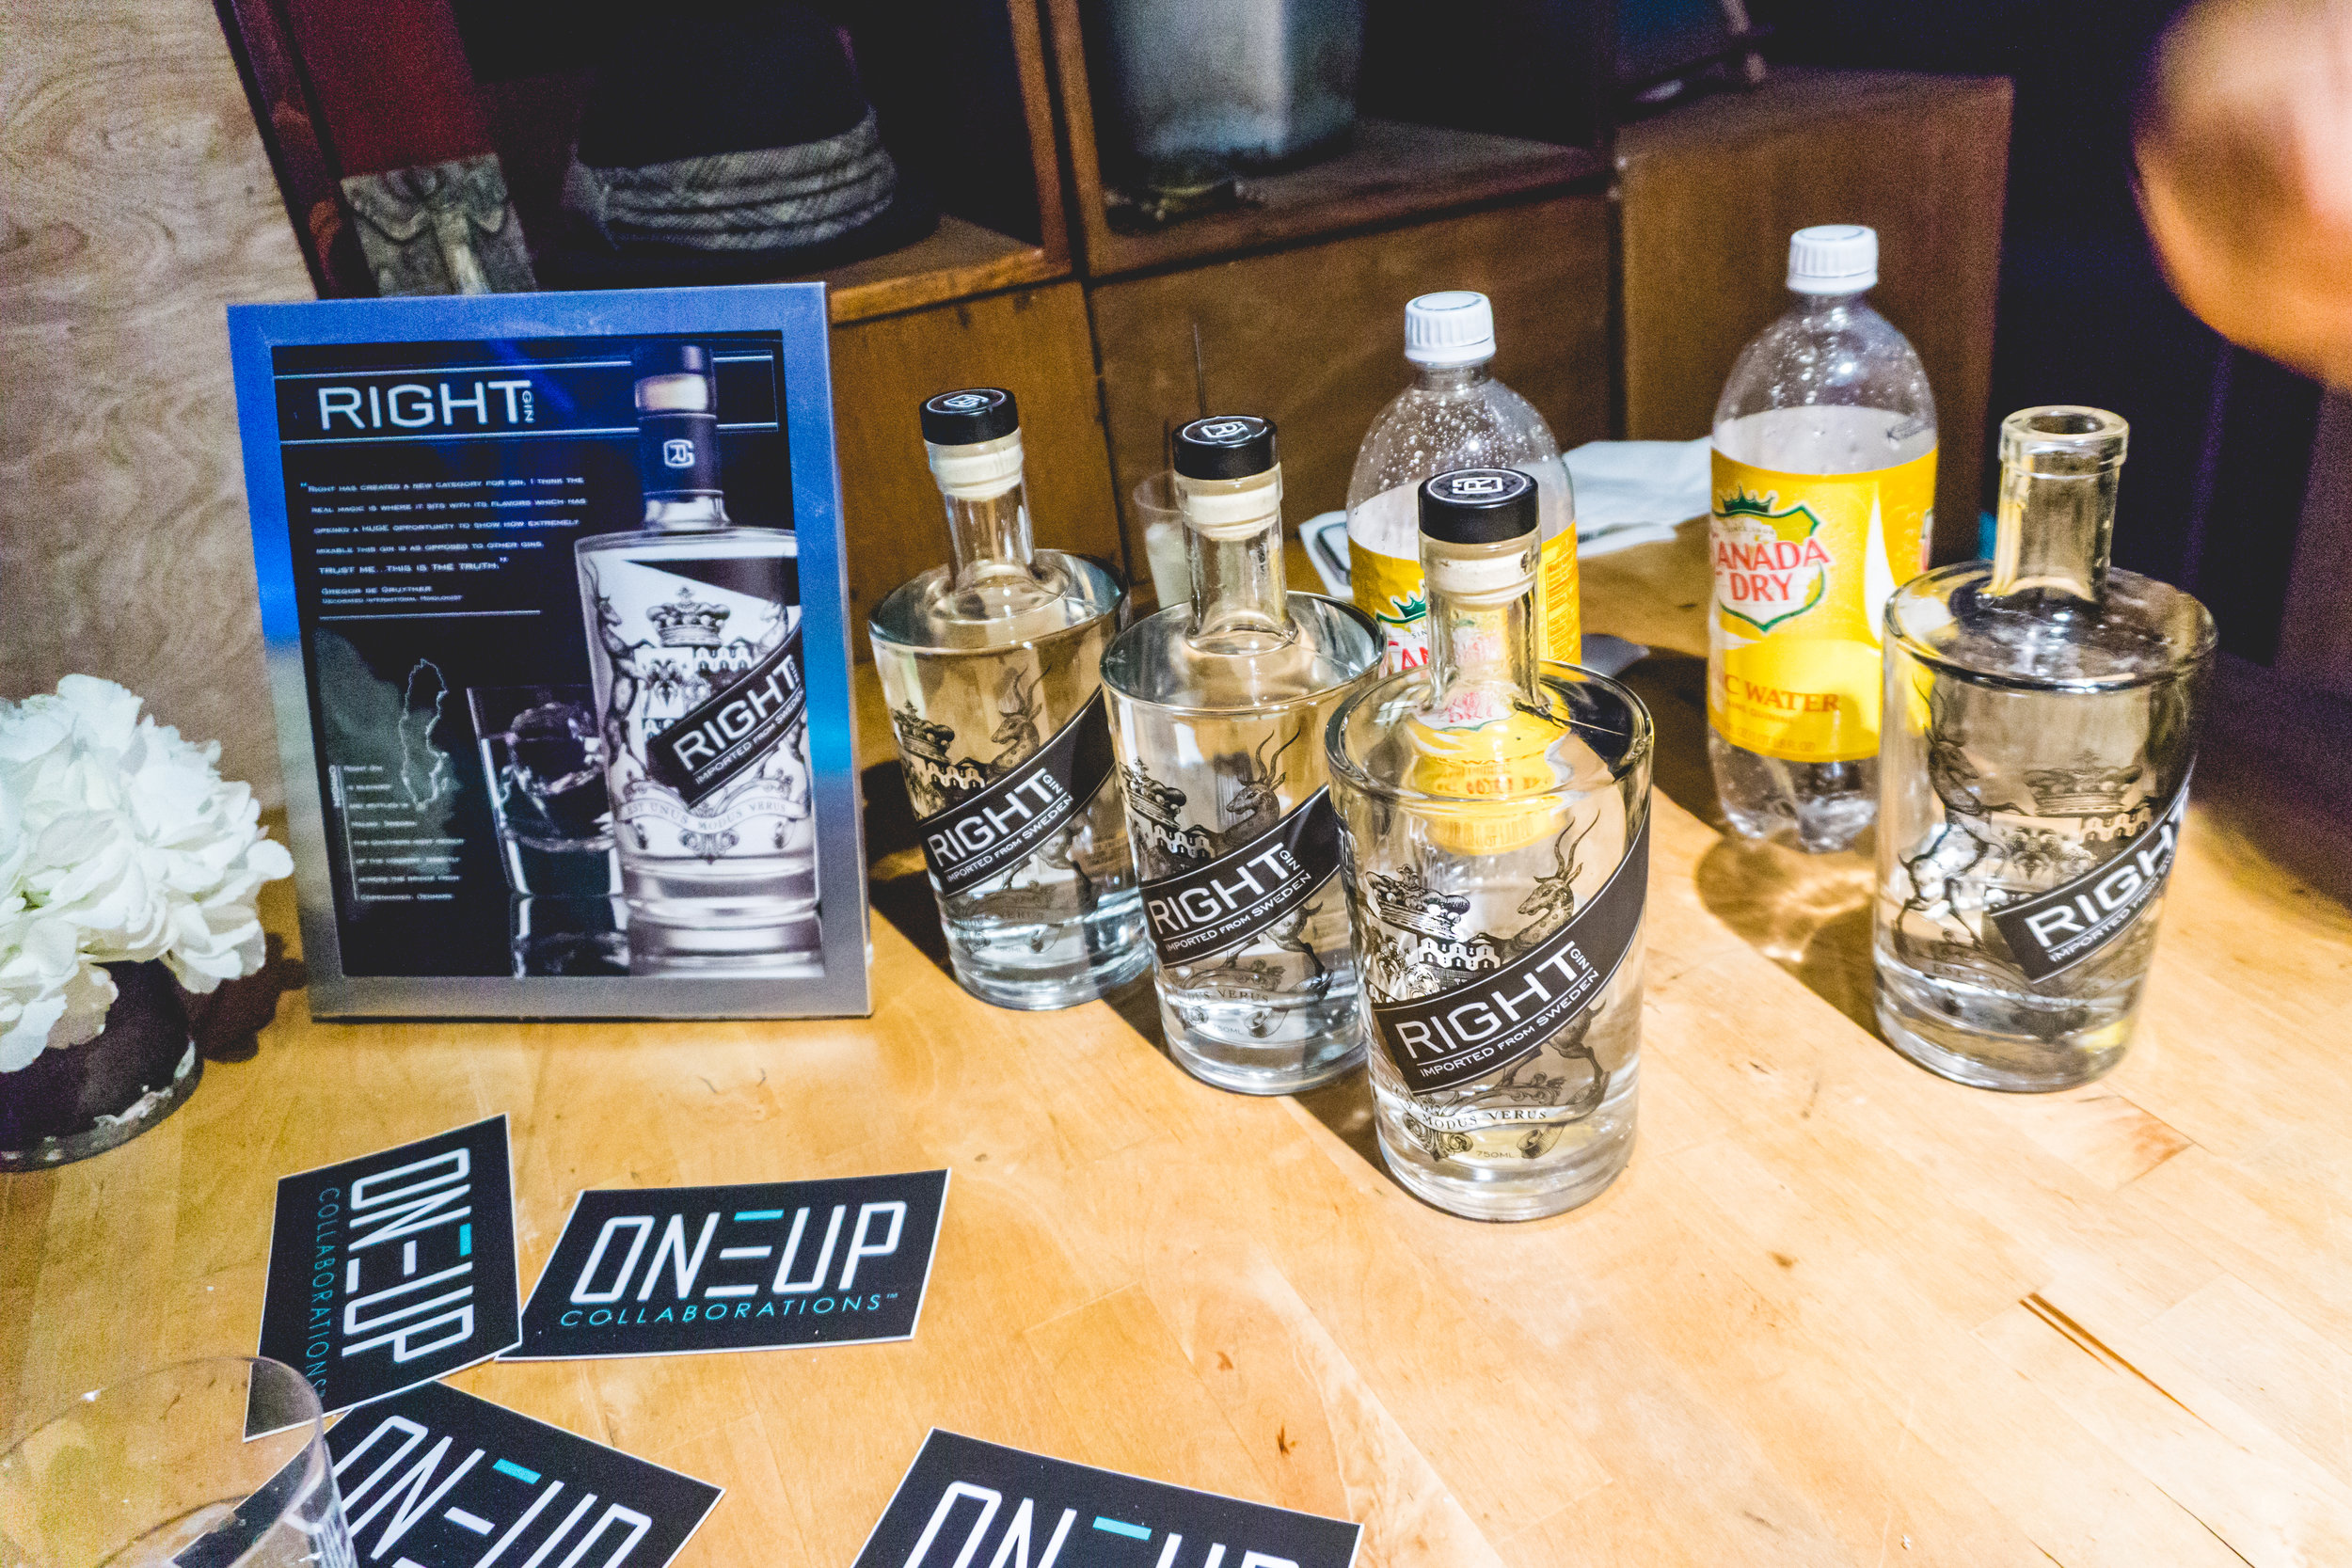 Shout out to Right Gin for the sponsor!